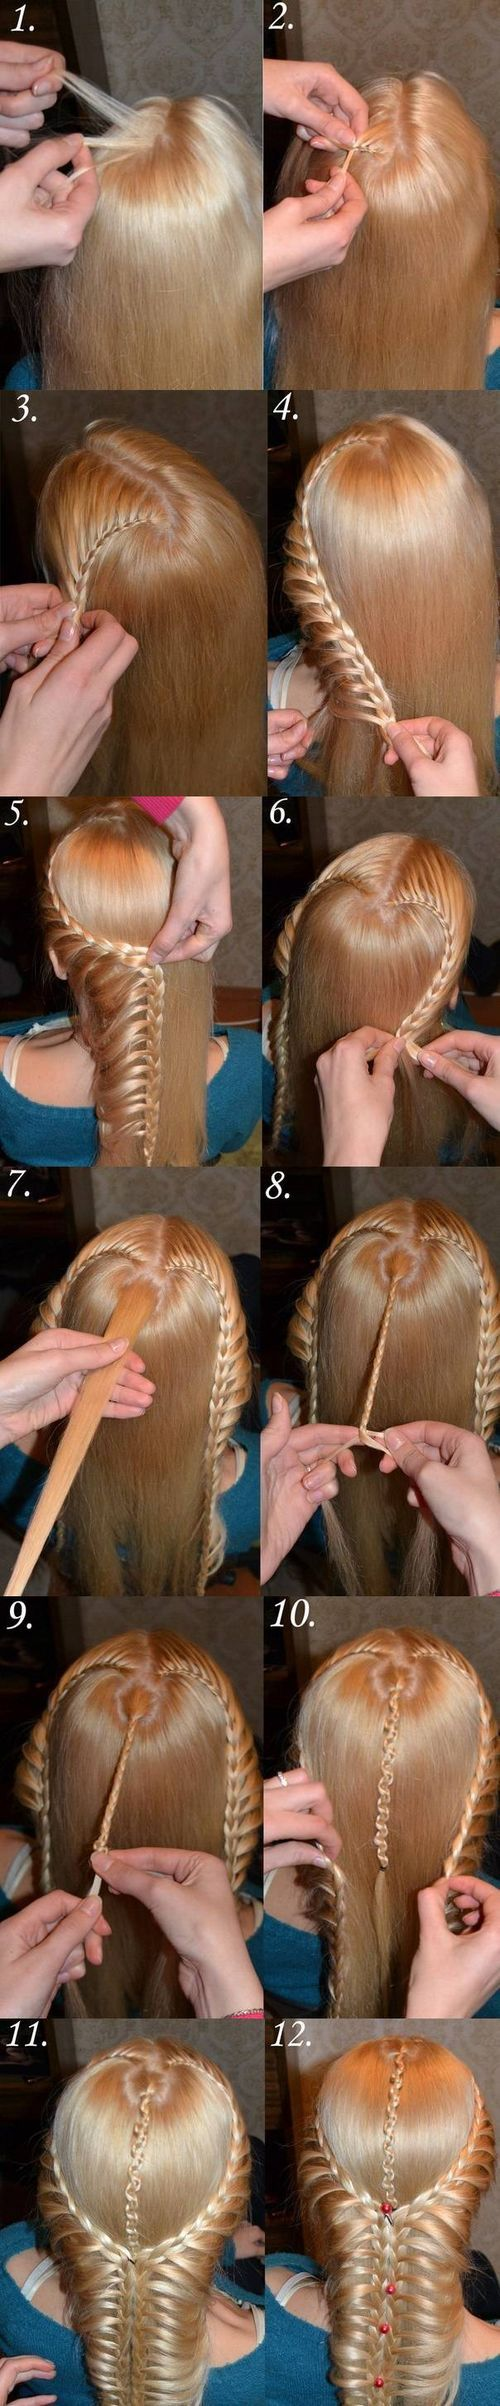 DIY Heart Shaped French Braids DIY Projects / UsefulDIY.com